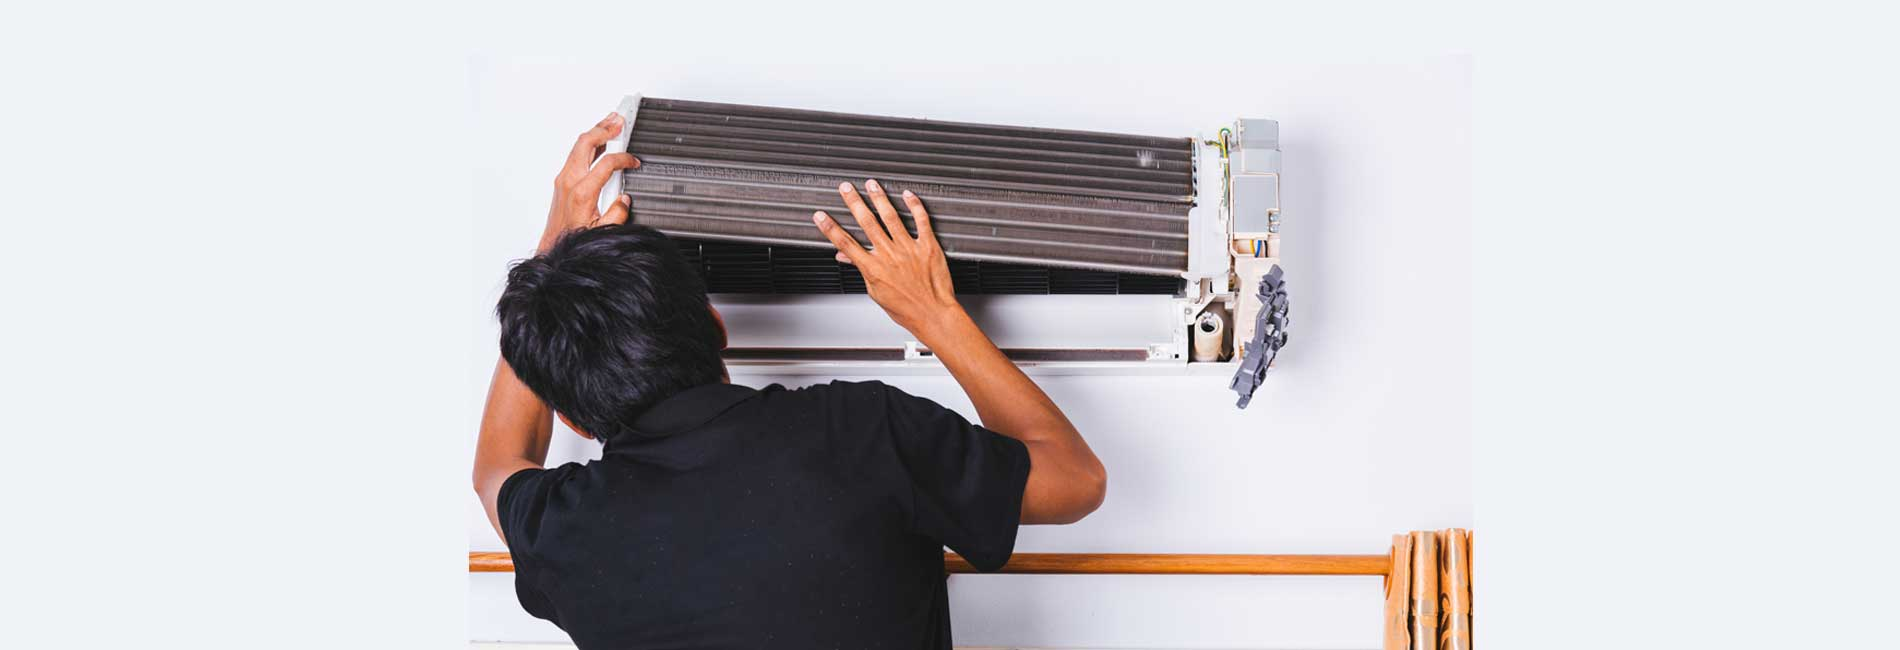 Hitachi AC Repair in Pudupakkam